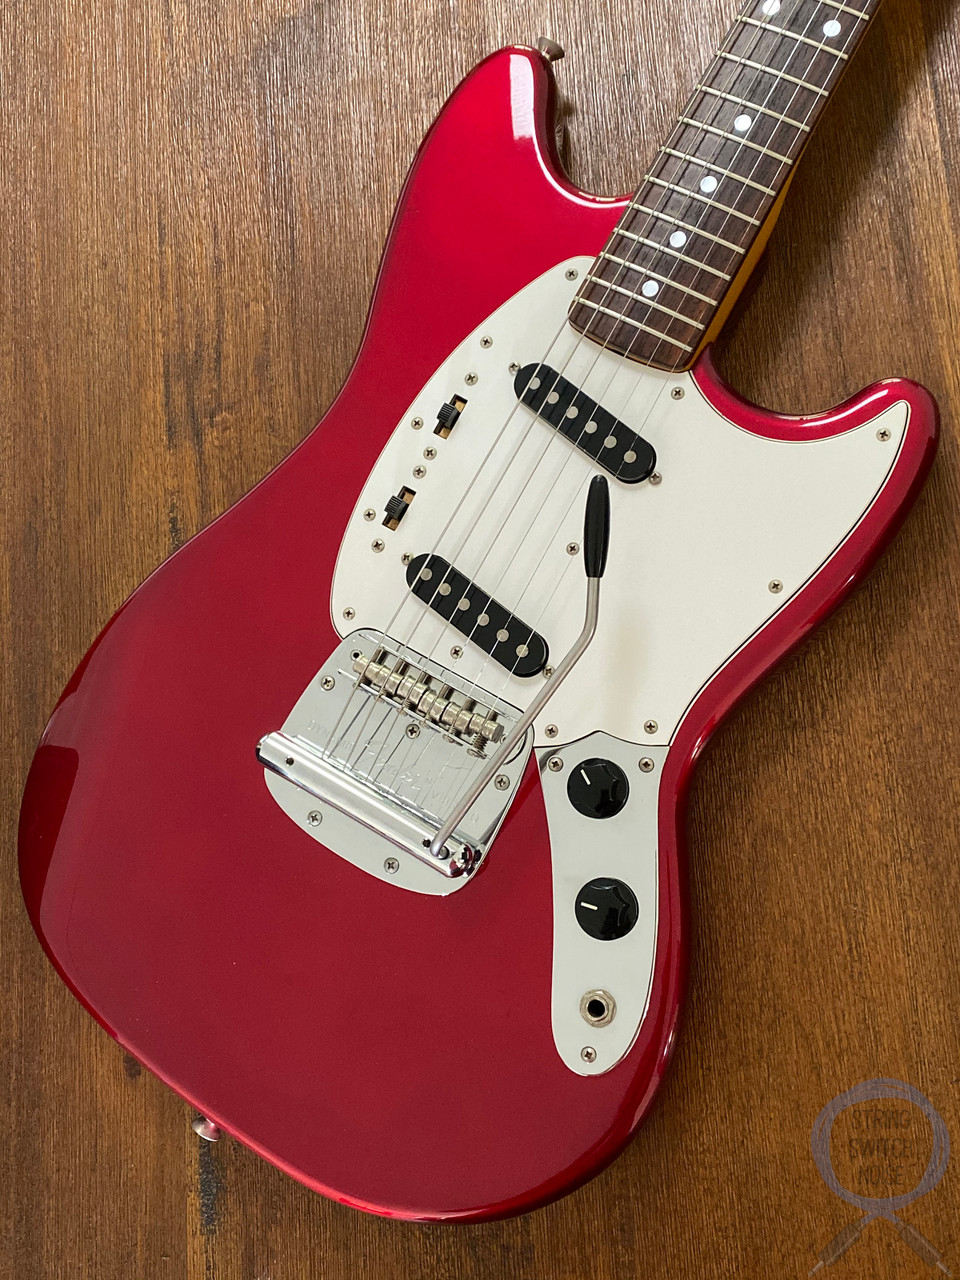 Fender Mustang, '69, Matching Headstock, Candy Apple Red, 2002